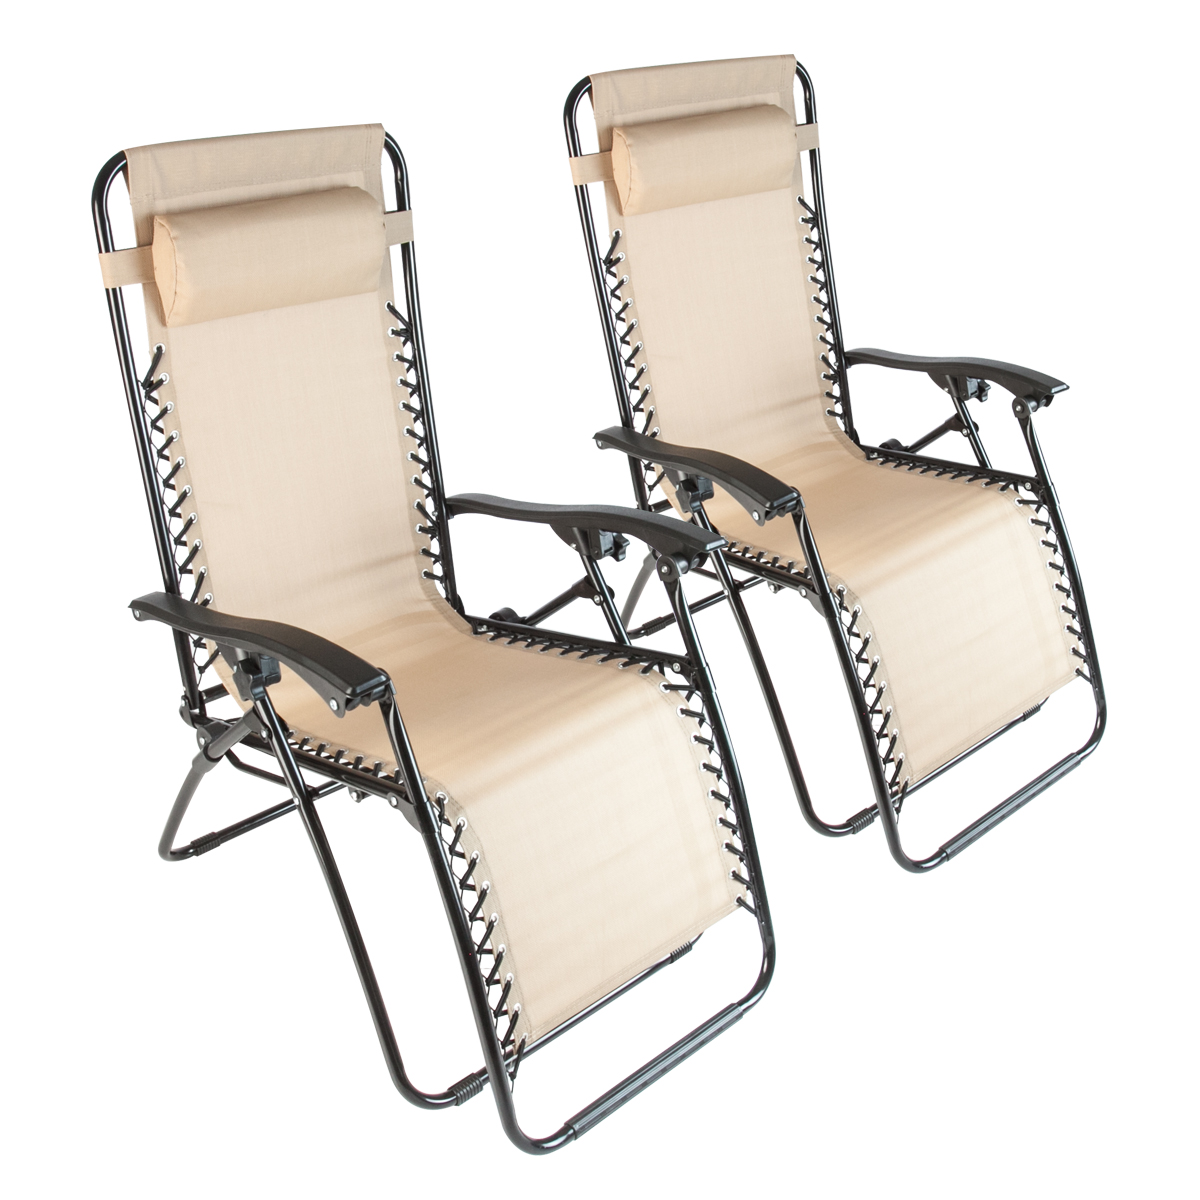 2 Beach Zero Gravity Folding Lounge Chairs Recliner Patio Pool Beige Outdoor New